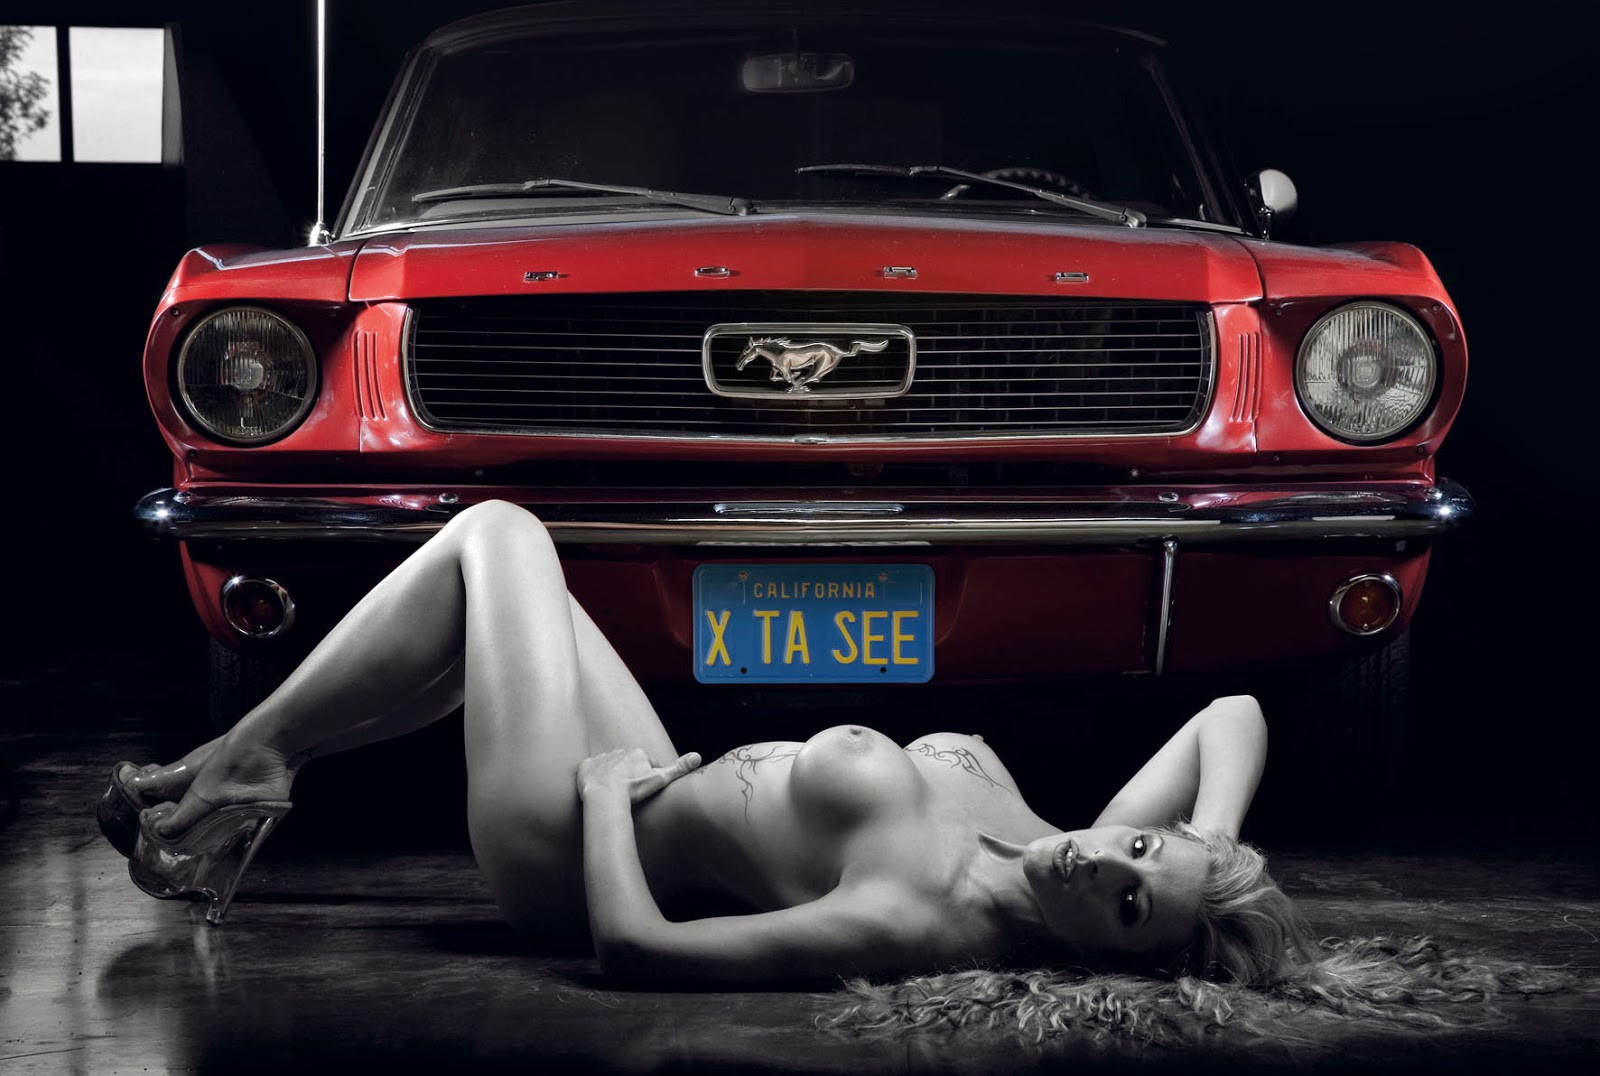 Consider, Naked girls and classic cars